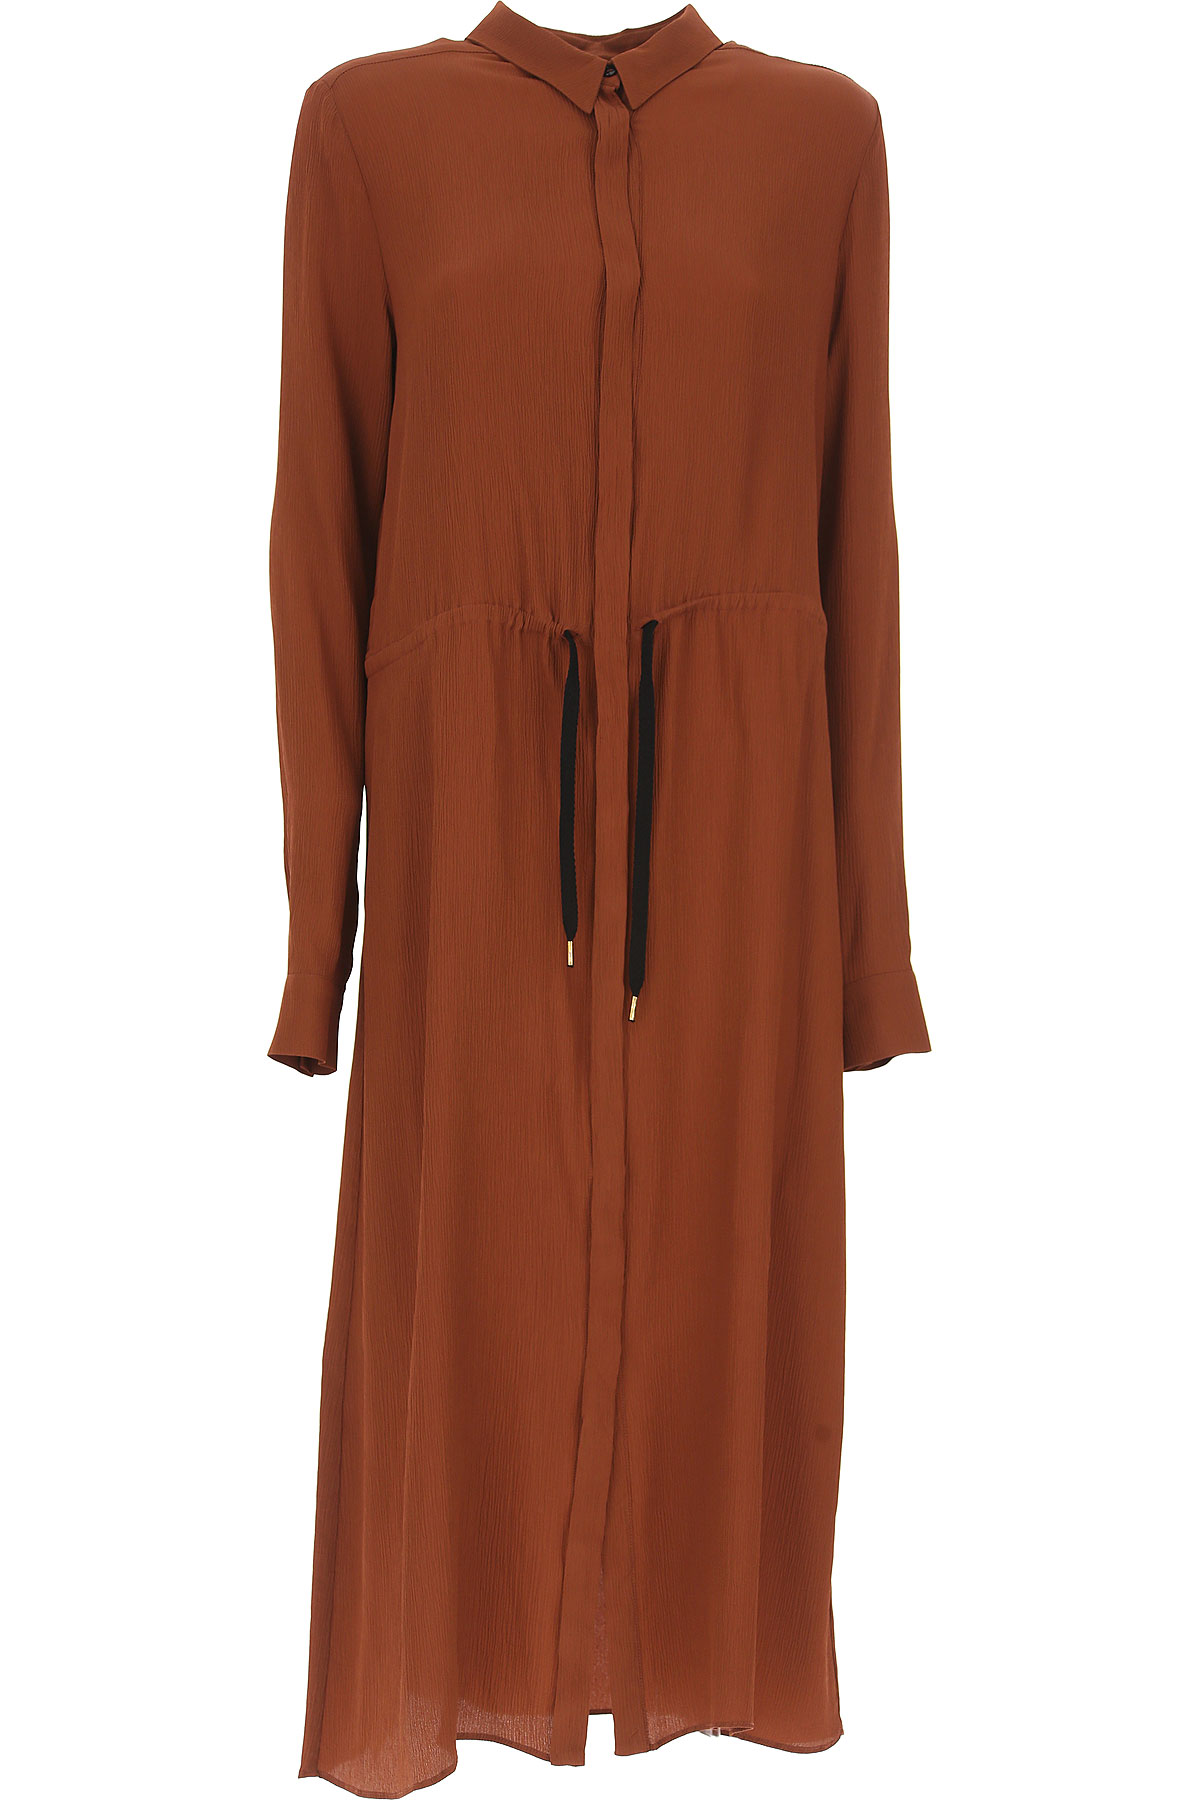 Image of Stella Jean Dress for Women, Evening Cocktail Party On Sale, Brown, polyamide, 2017, 4 8